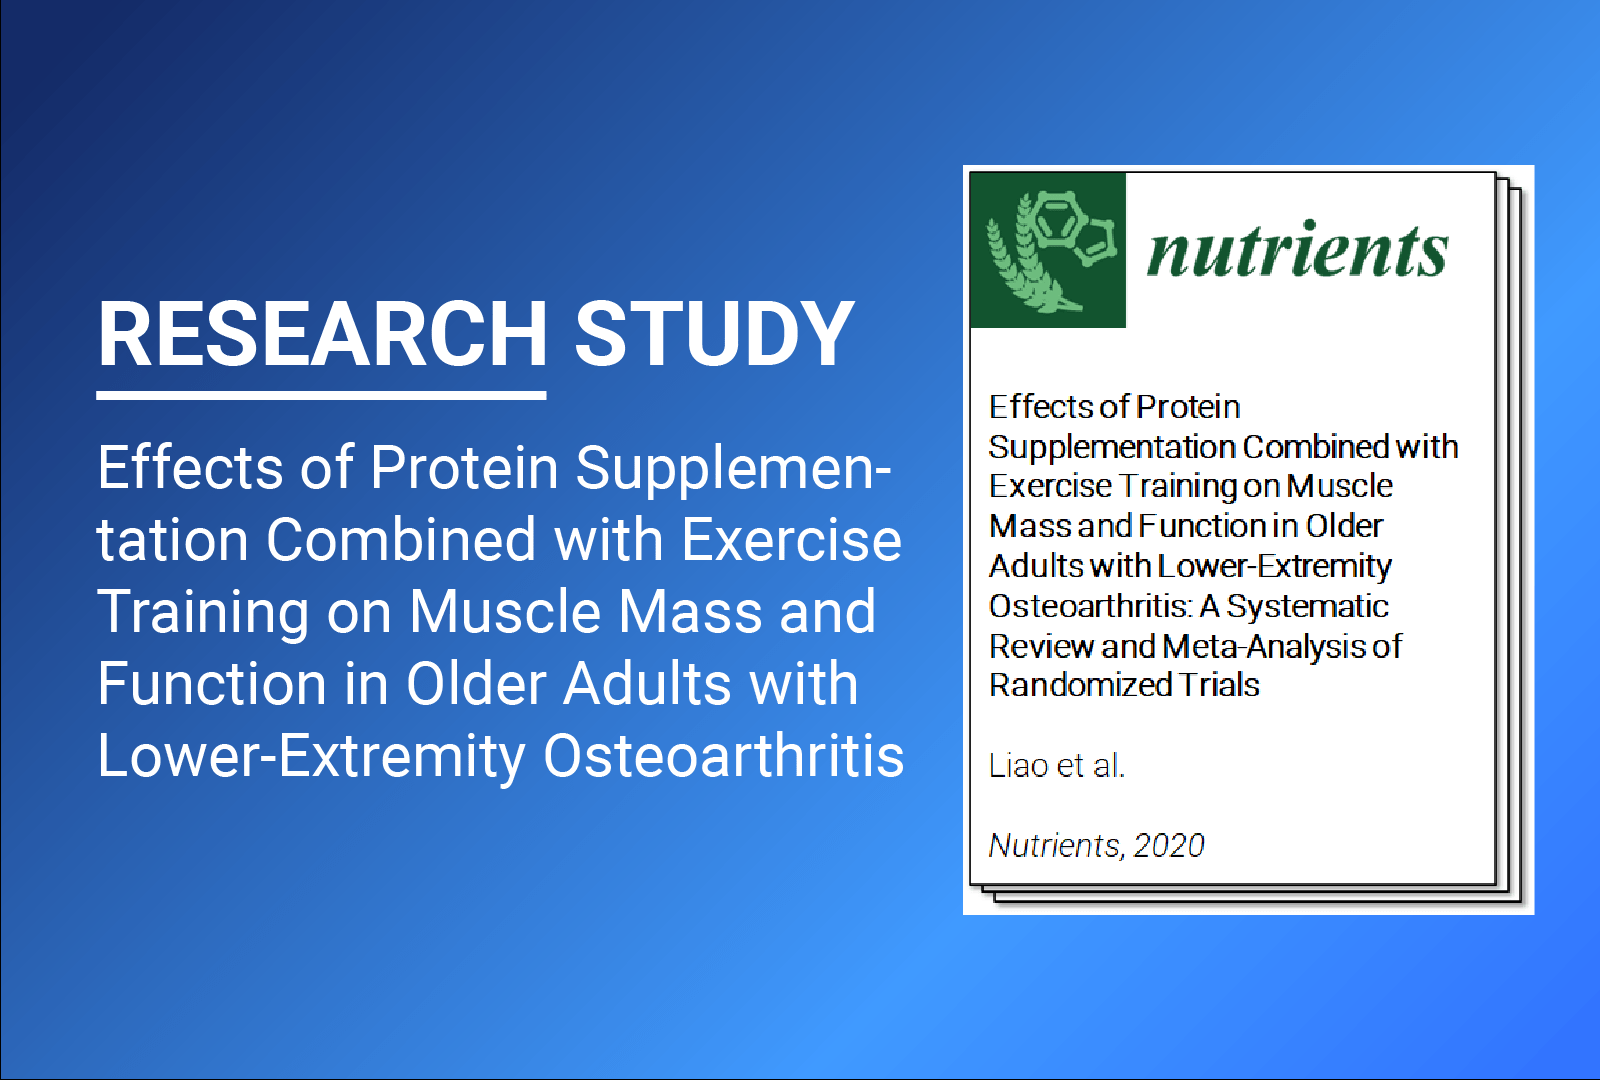 Clinical Paper: Meta-Analysis of Protein Supplementation in Lower-Extremity Osteoarthritis